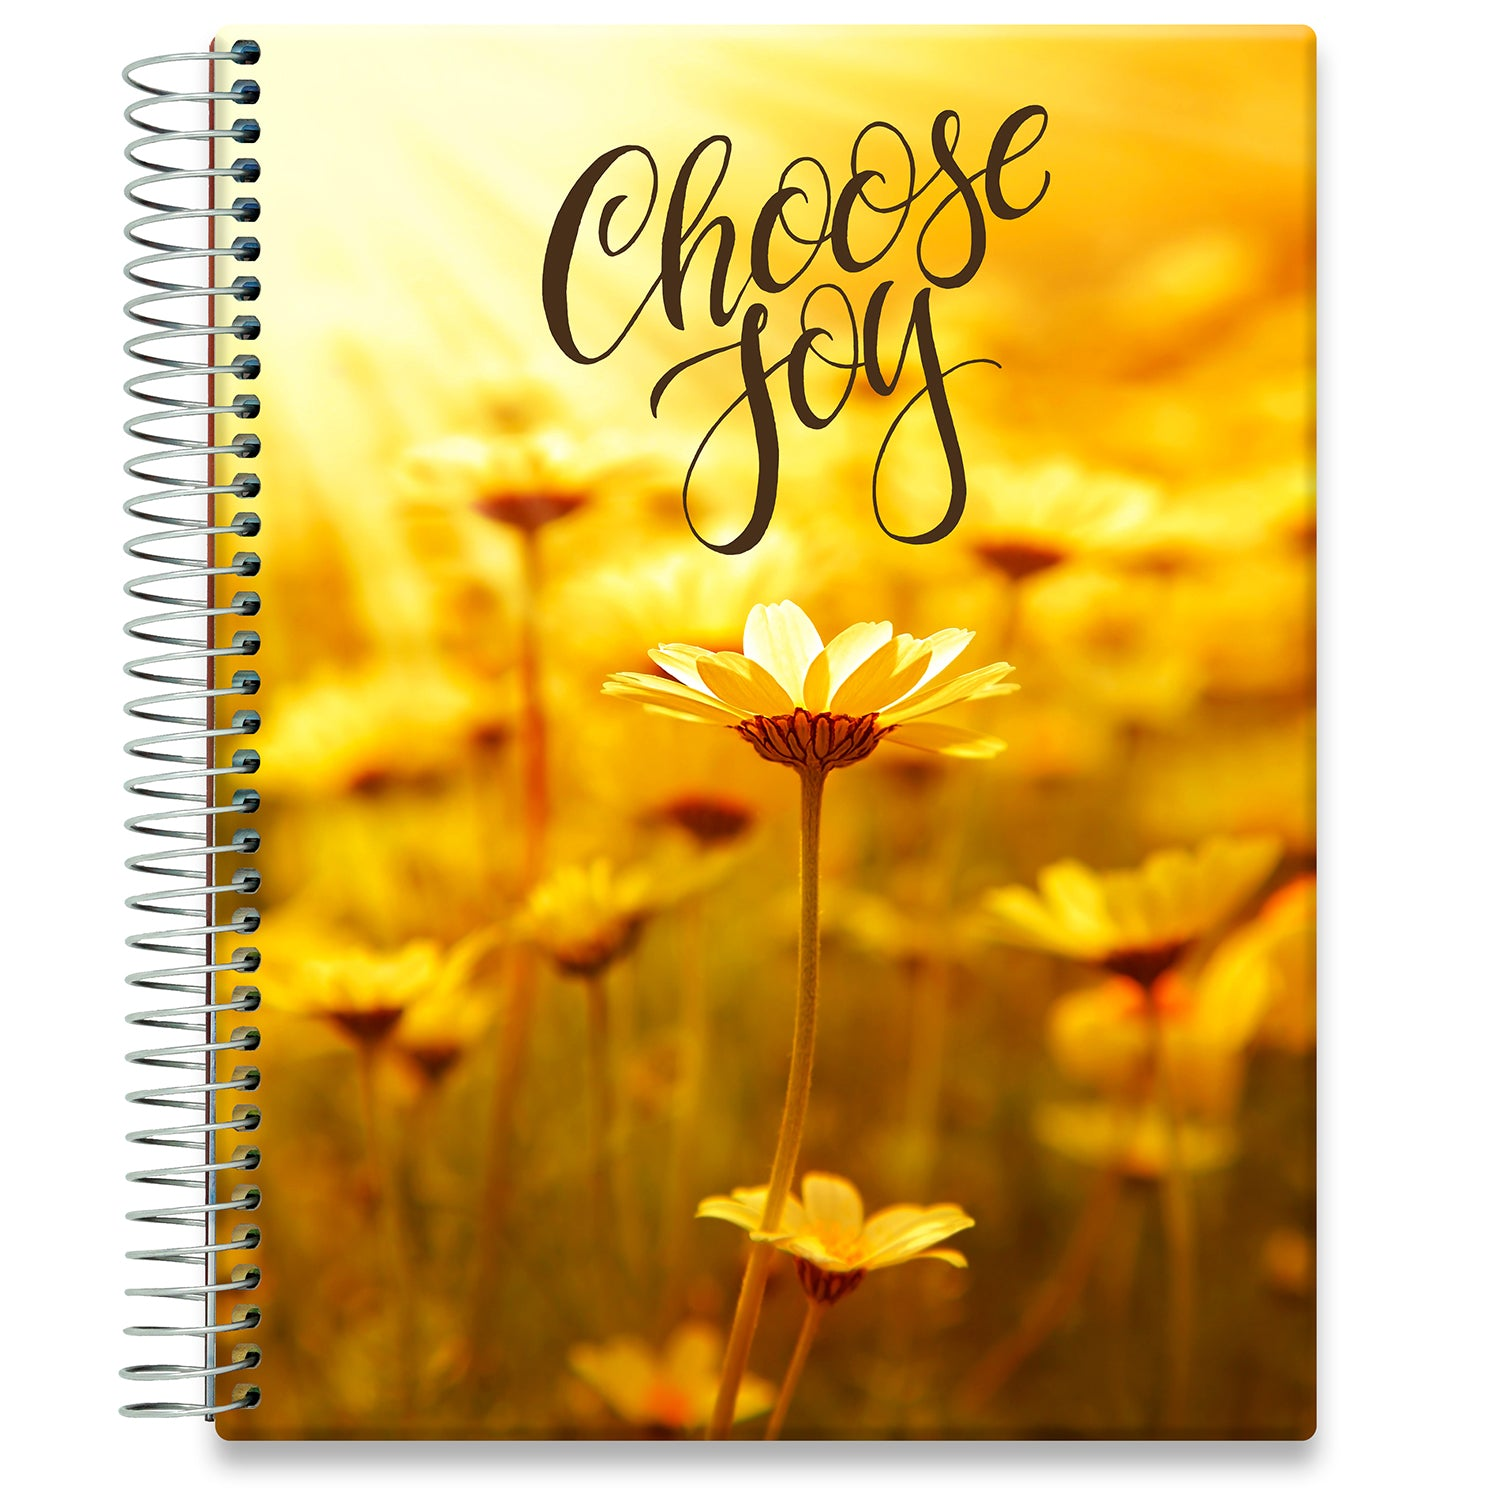 Planner 2021-2022 • April 2021 to June 2022 Academic Year • 8.5x11 Hardcover • Golden Daisies w Quote